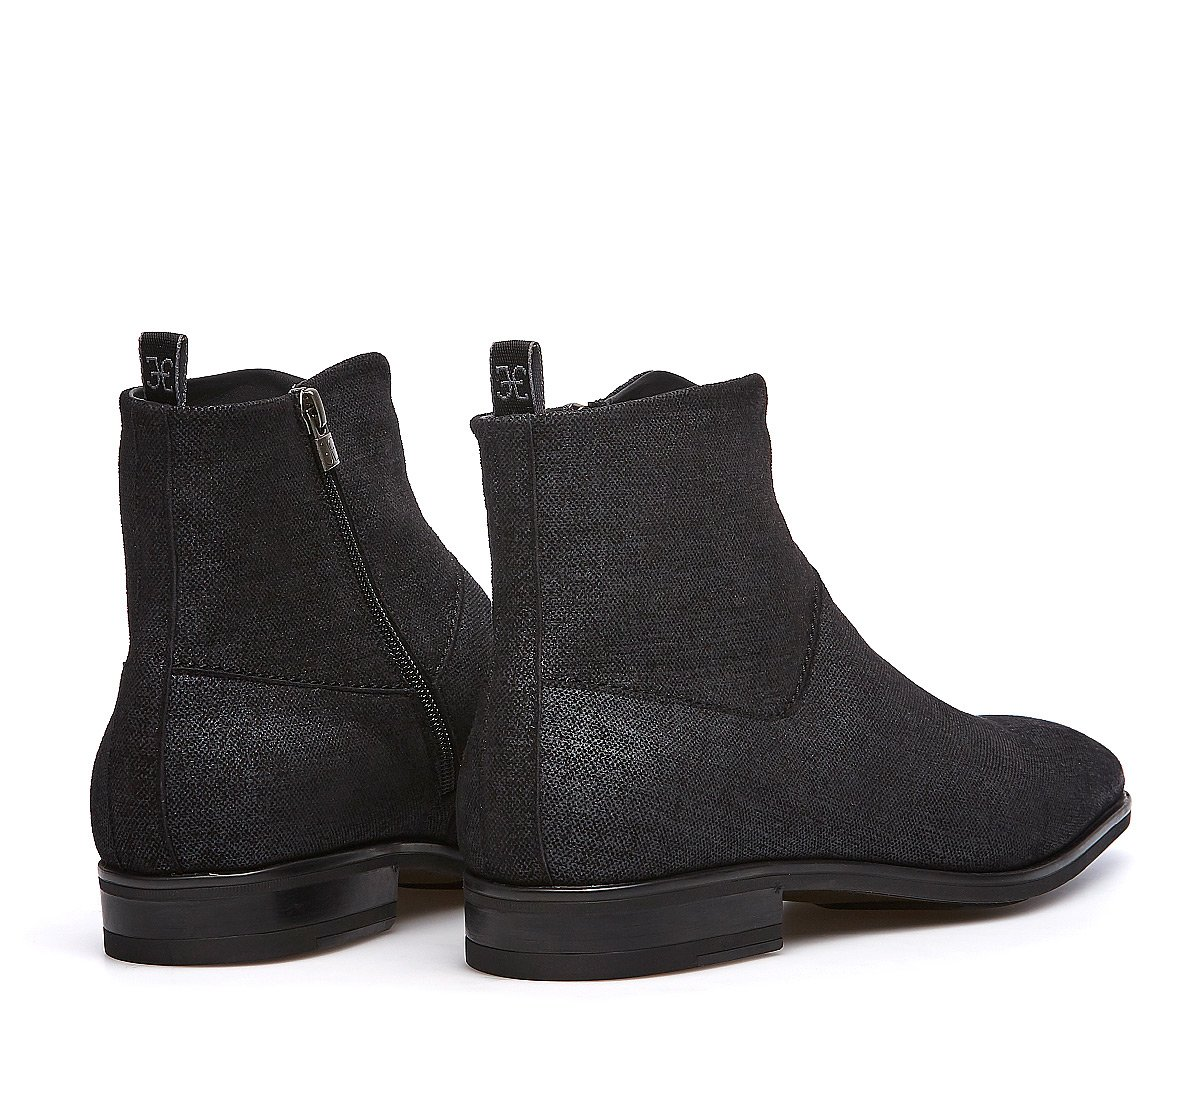 Beatle boot in soft kidskin